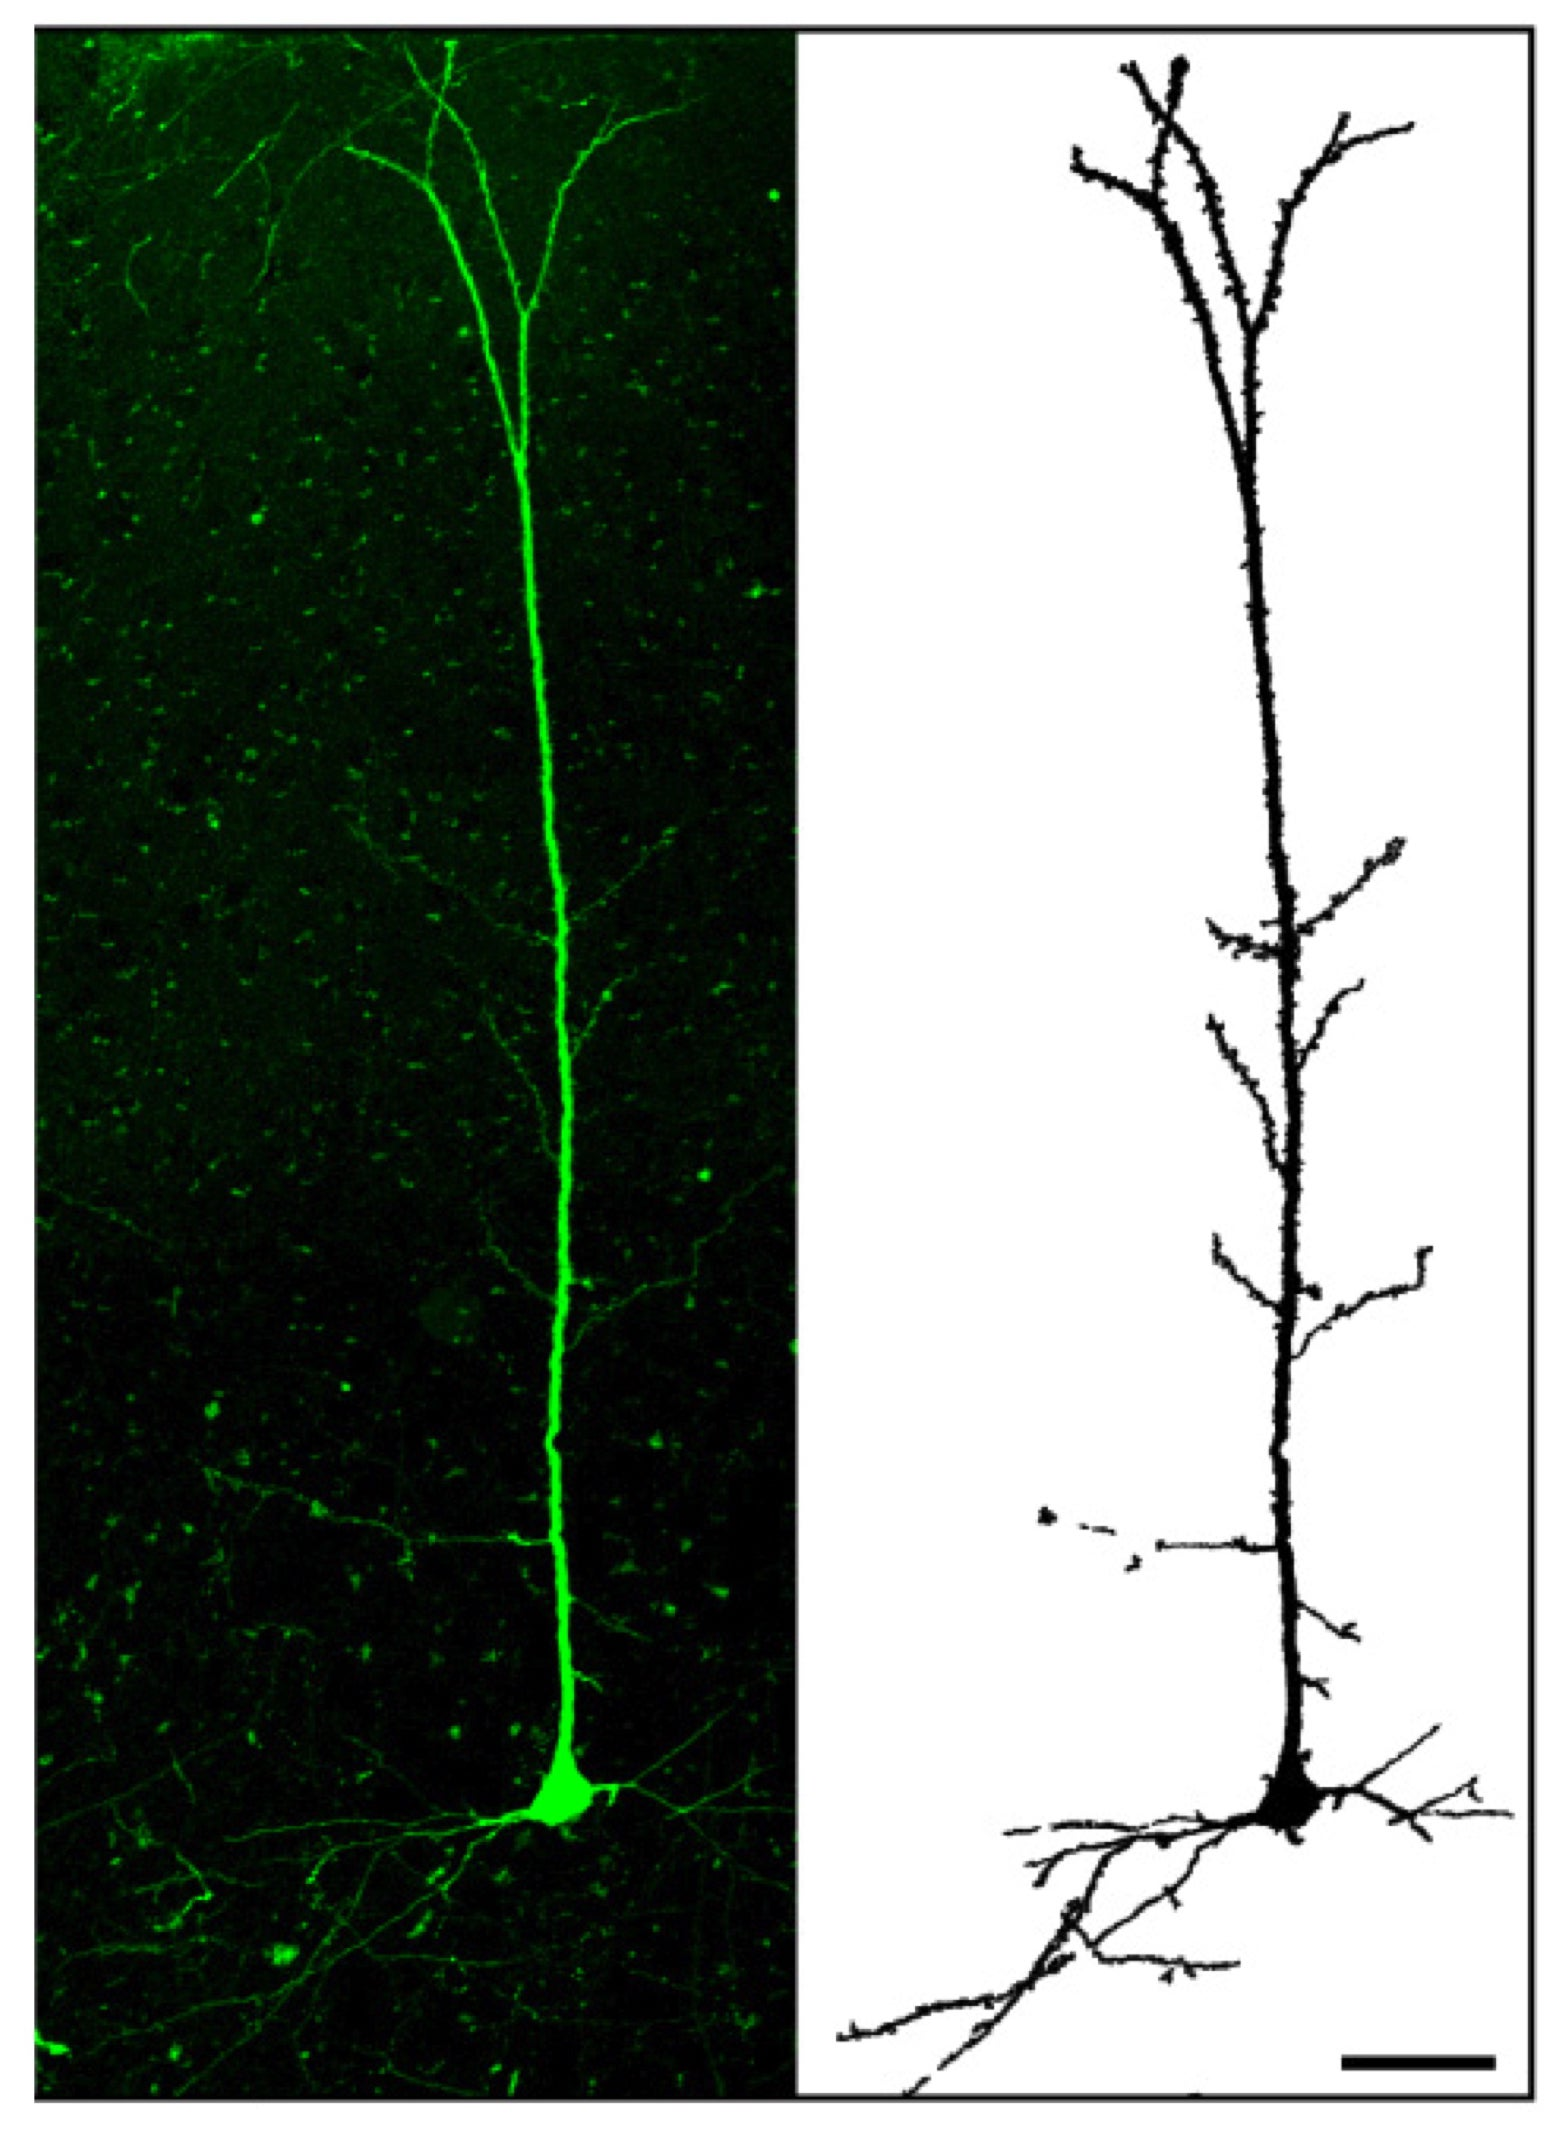 Lab Grown Neurons Could Help Scientists Repair Damaged Brain Tissue Create Circuit Board Modeled On The Human W Video Cortical Transplanted In A Mouse Credit Courtesy Of P Vanderhaegen Et Al